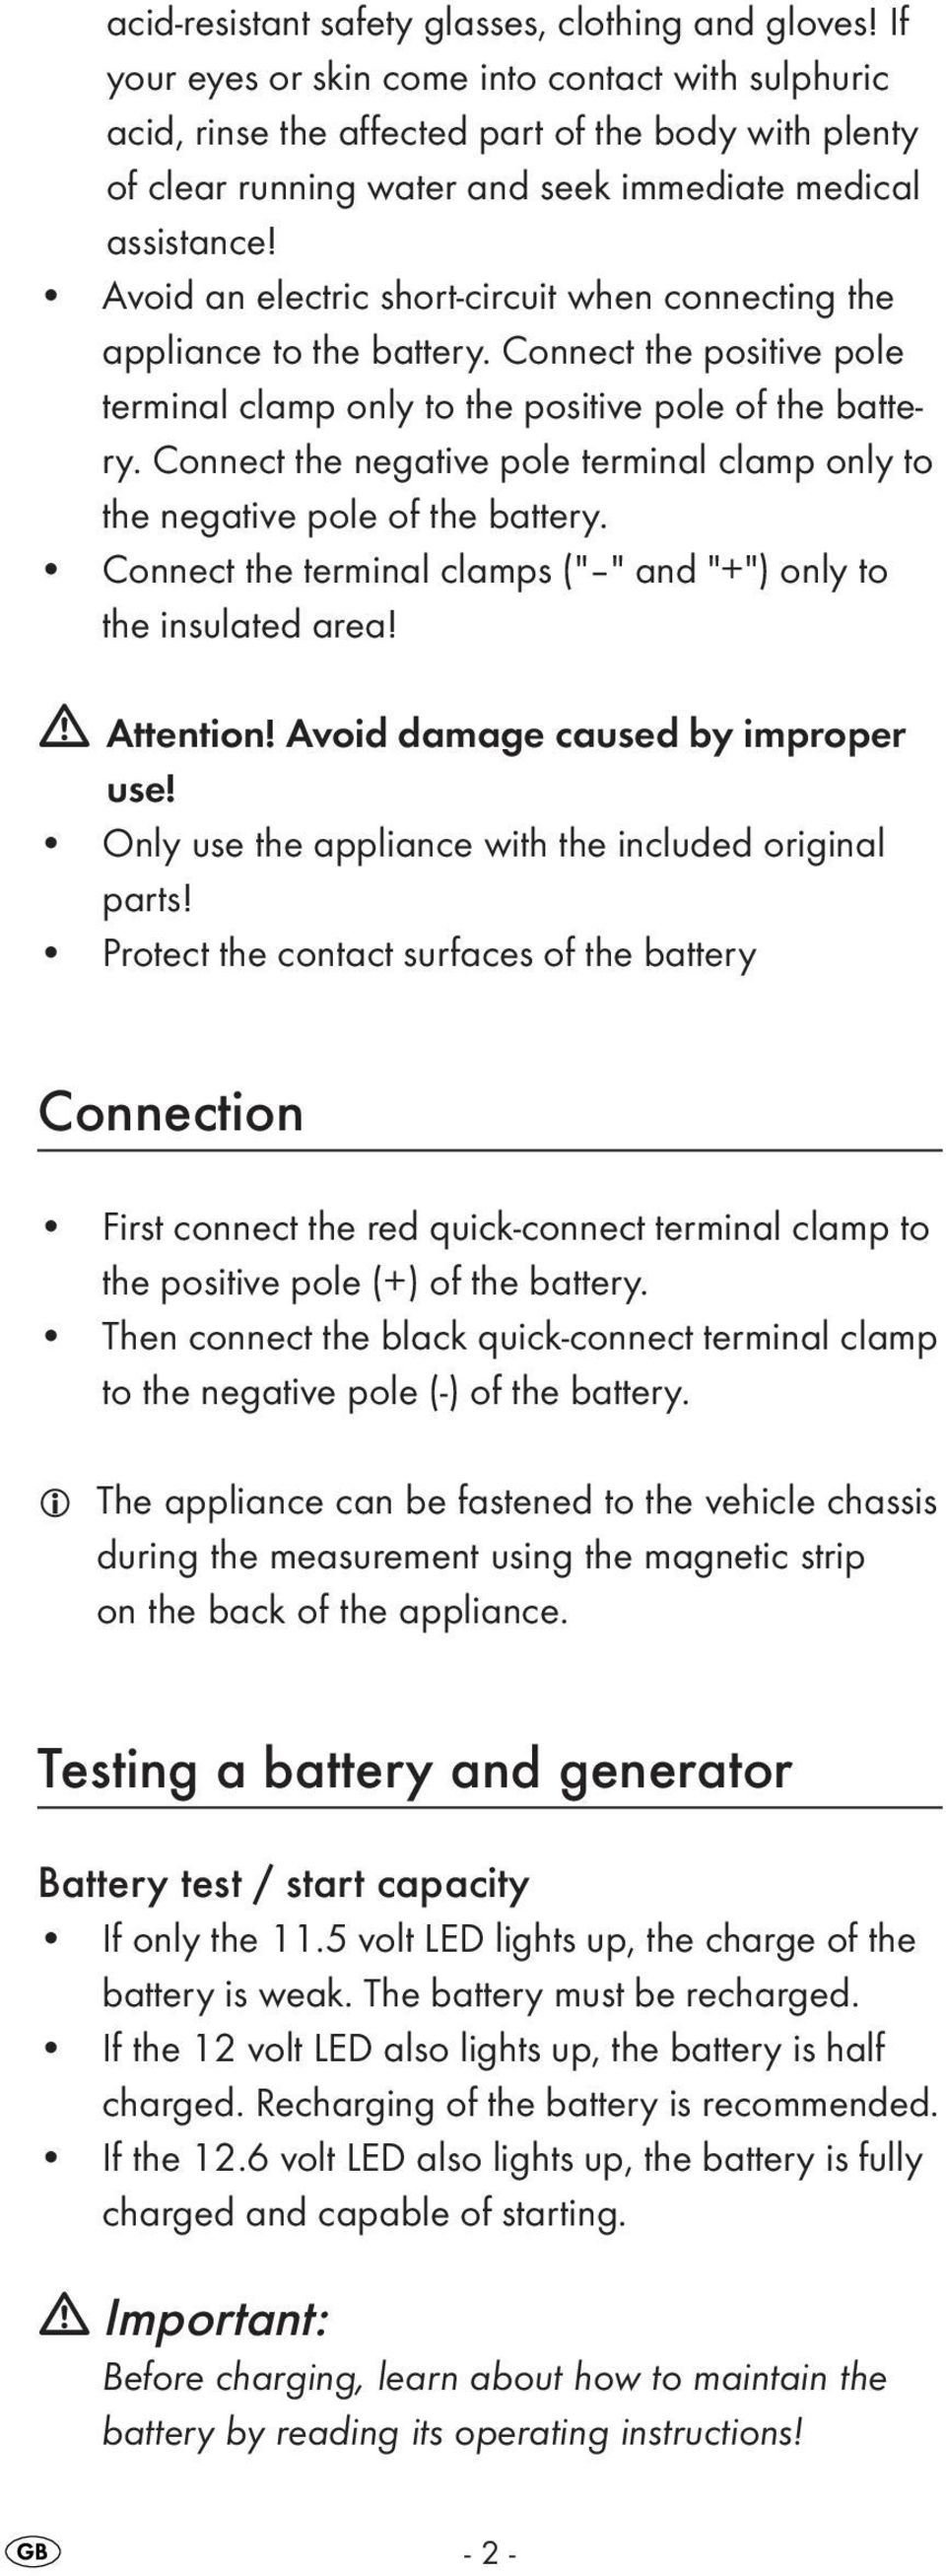 Avoid an electric short-circuit when connecting the appliance to the battery. Connect the positive pole terminal clamp only to the positive pole of the battery.